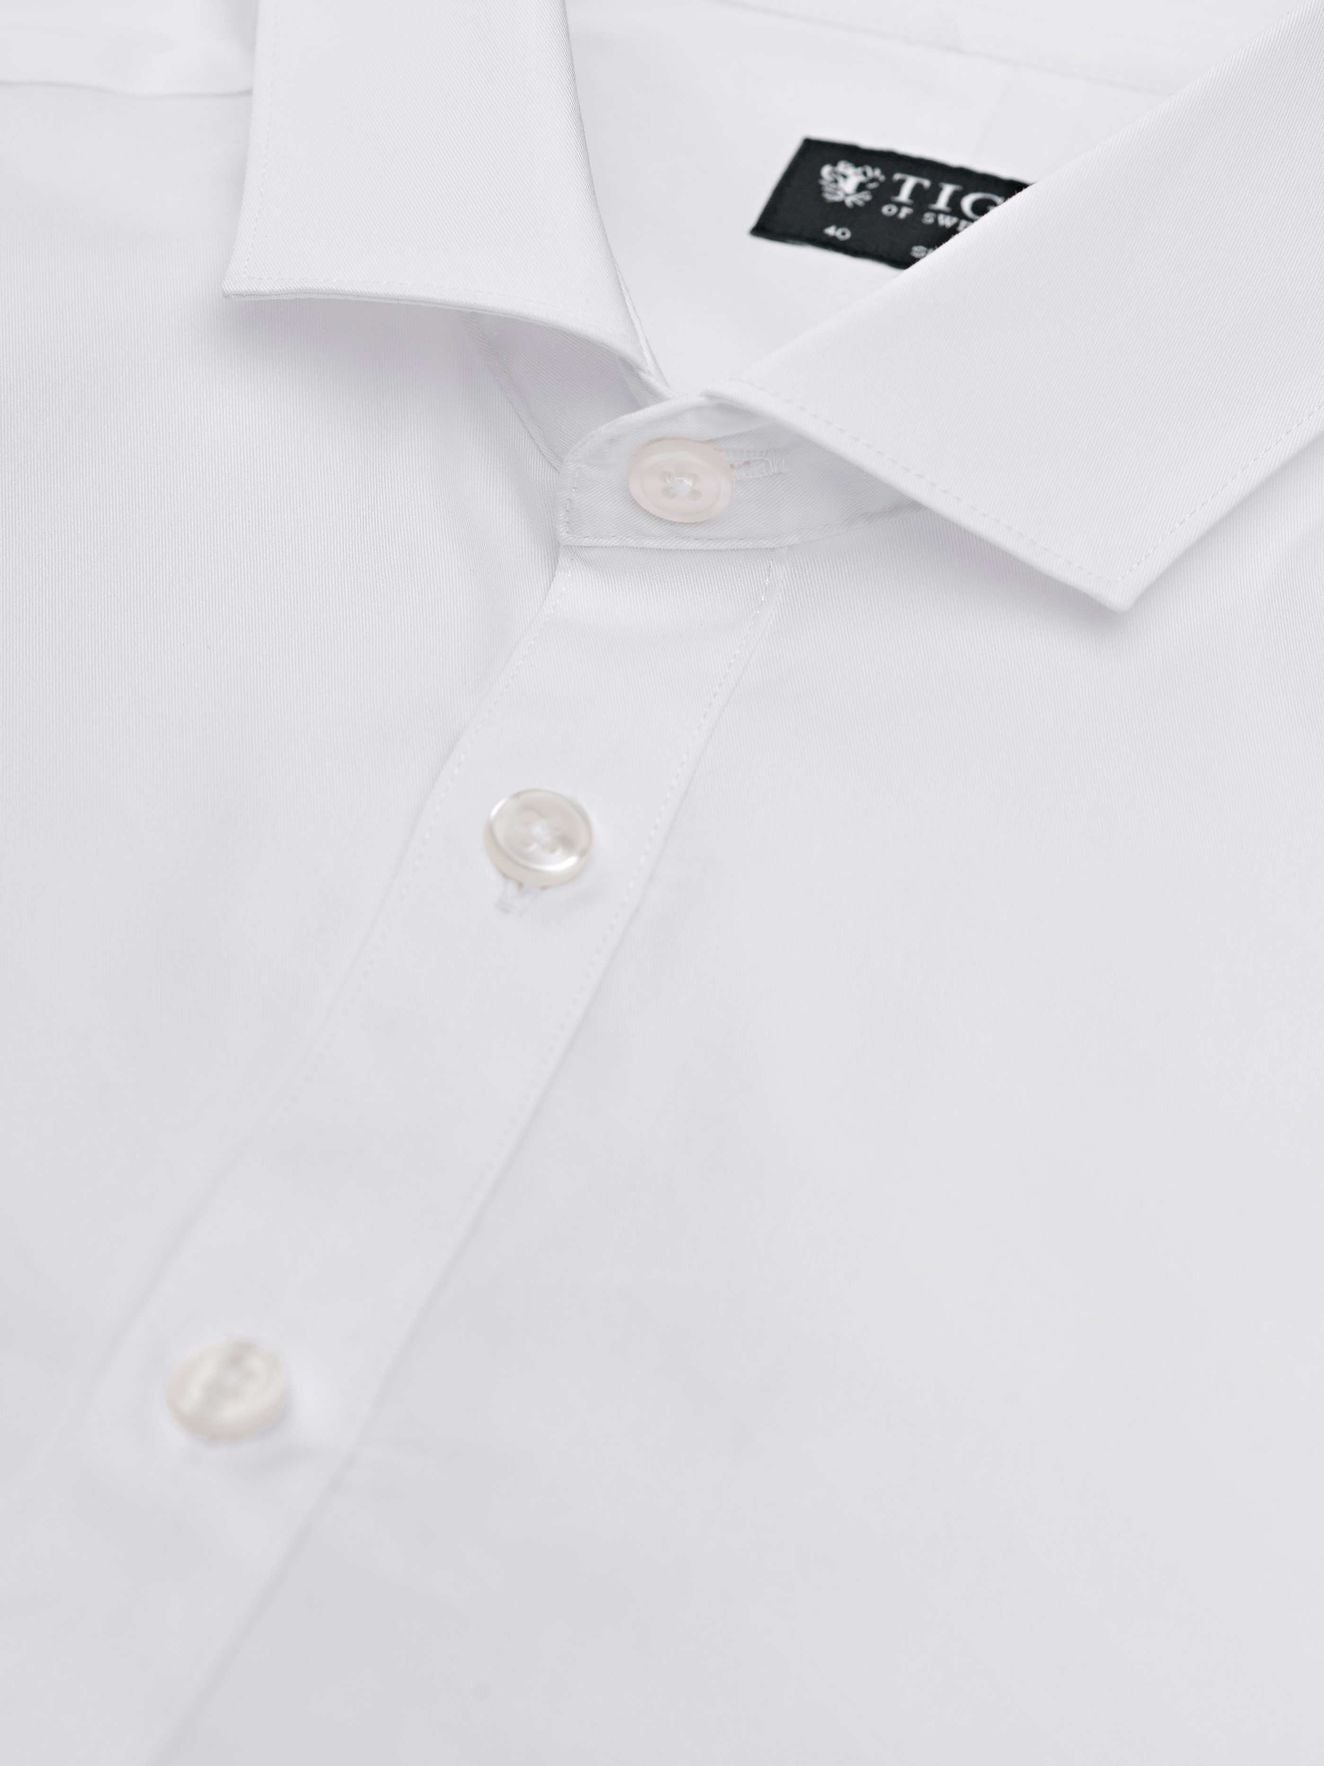 Tiger of Sweden Steel 1 Shirt White - Mojo Independent Store